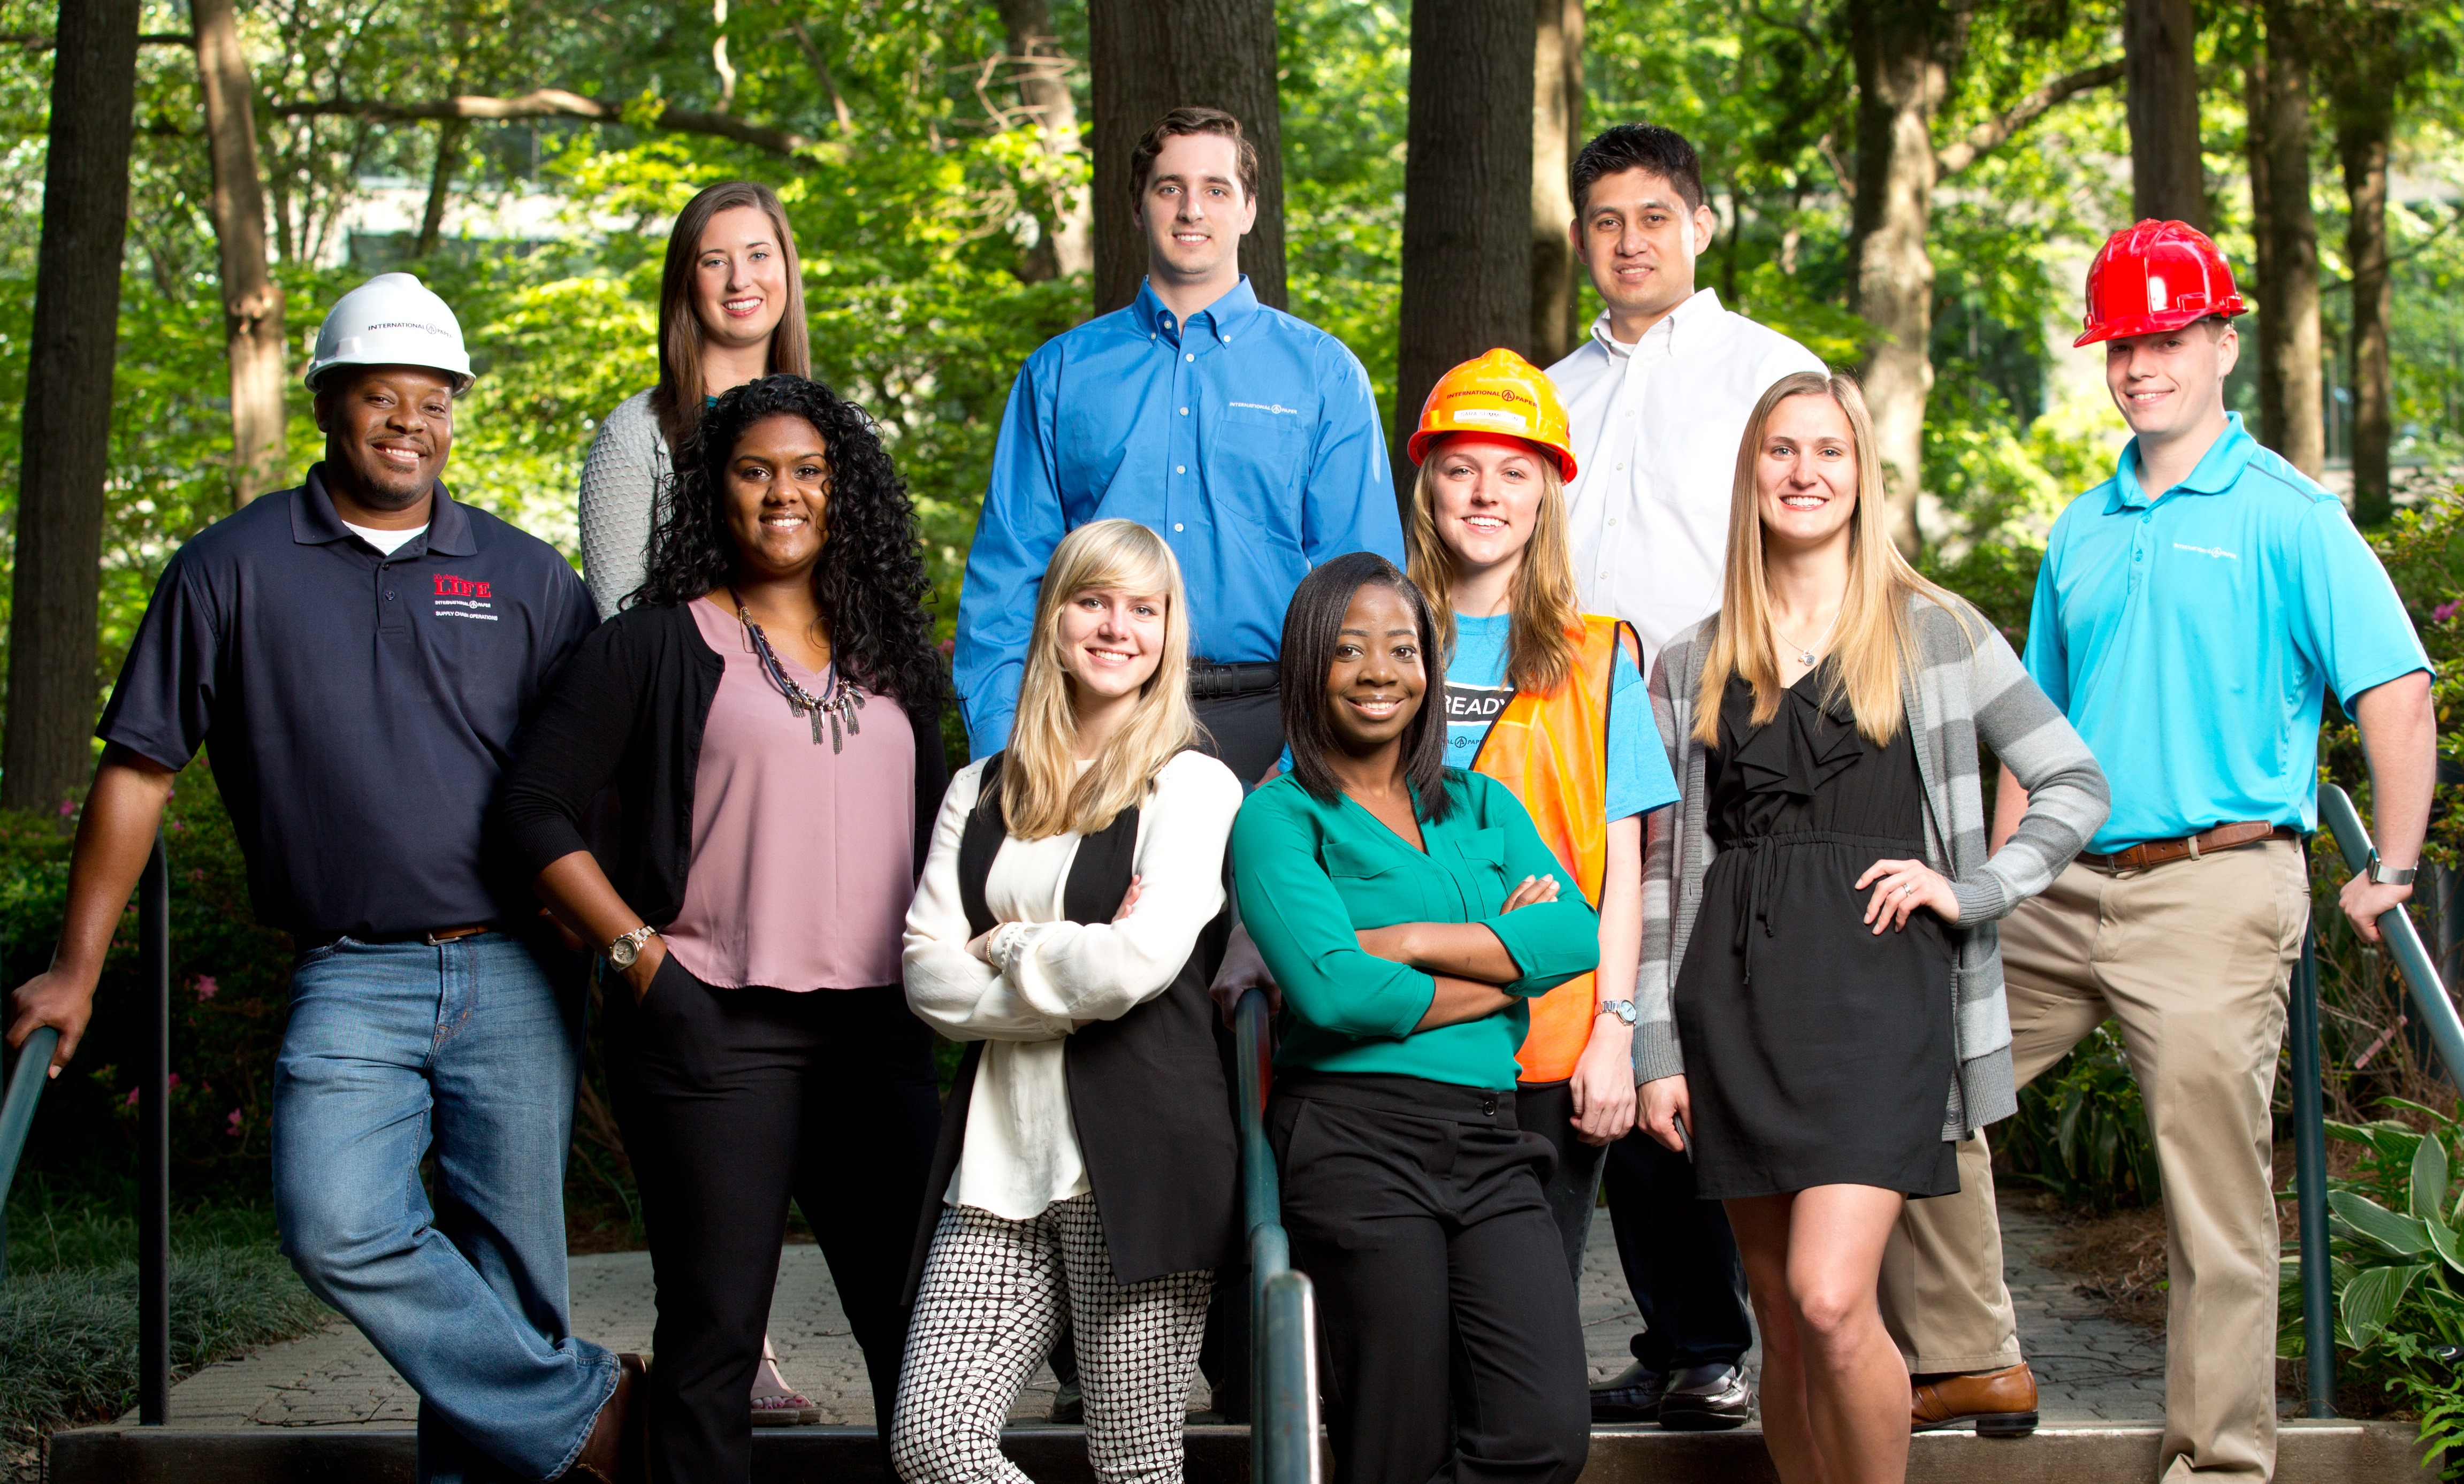 International Paper's Internships and Co-Op programs